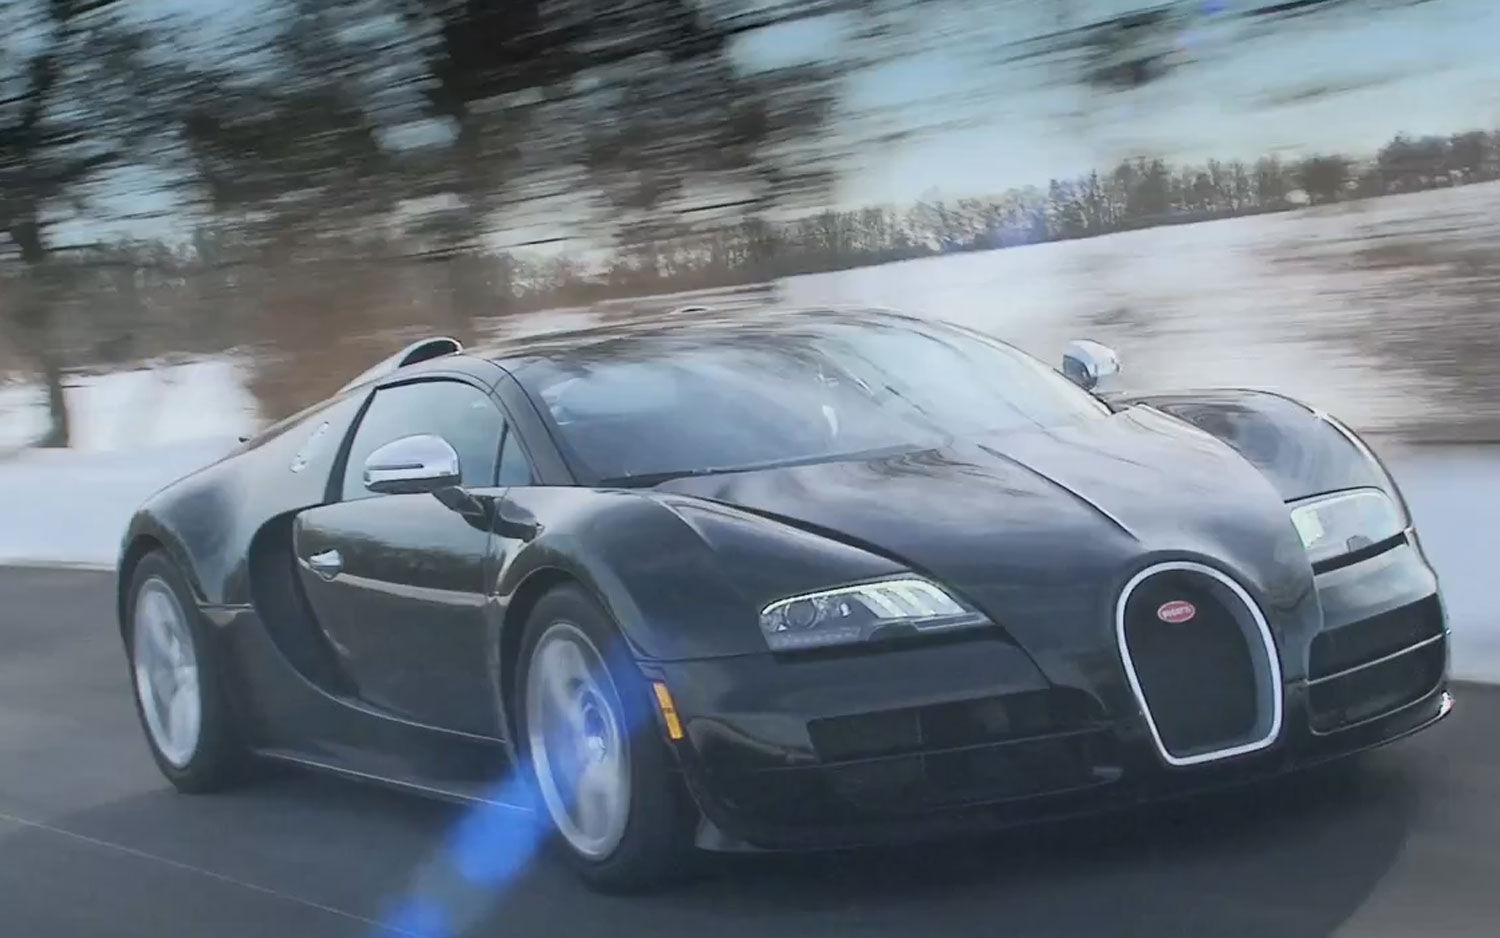 Bugatti Veyron Grand Sport Vitesse Front Three Quarter View In Motion 21